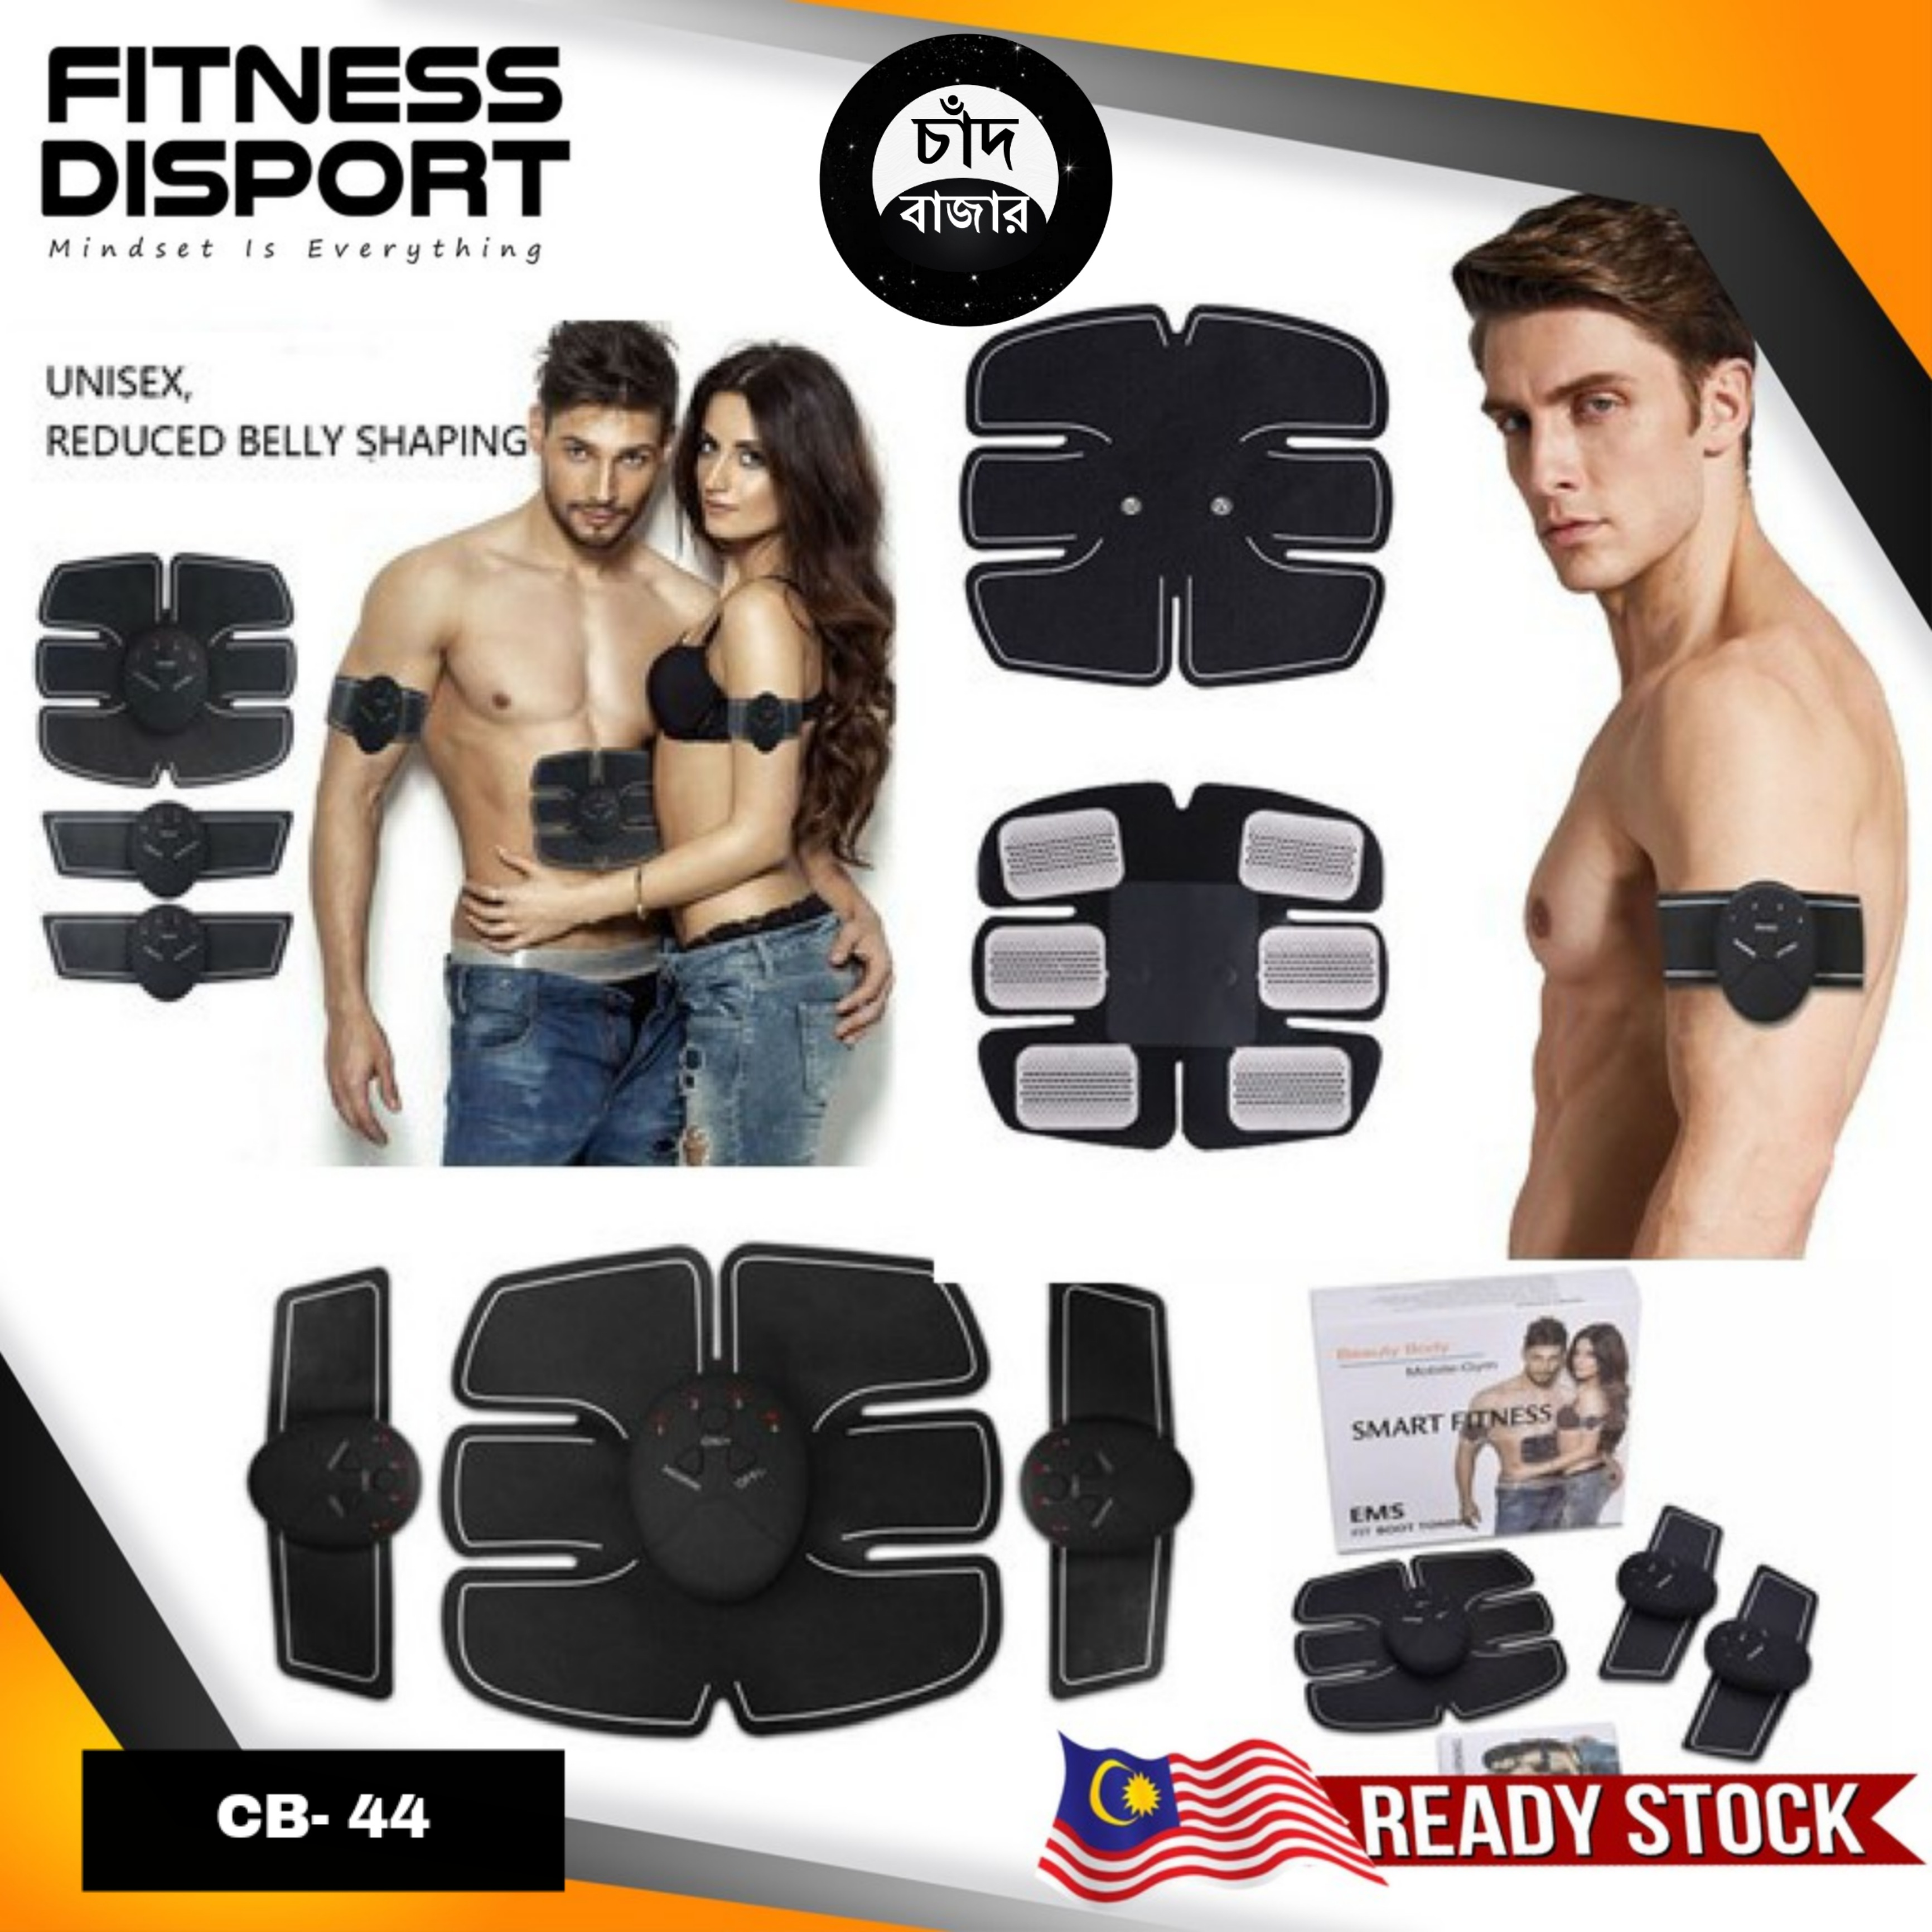 EMS Fit Boot Toning Smart Fitness Beauty Body Mobile Gym